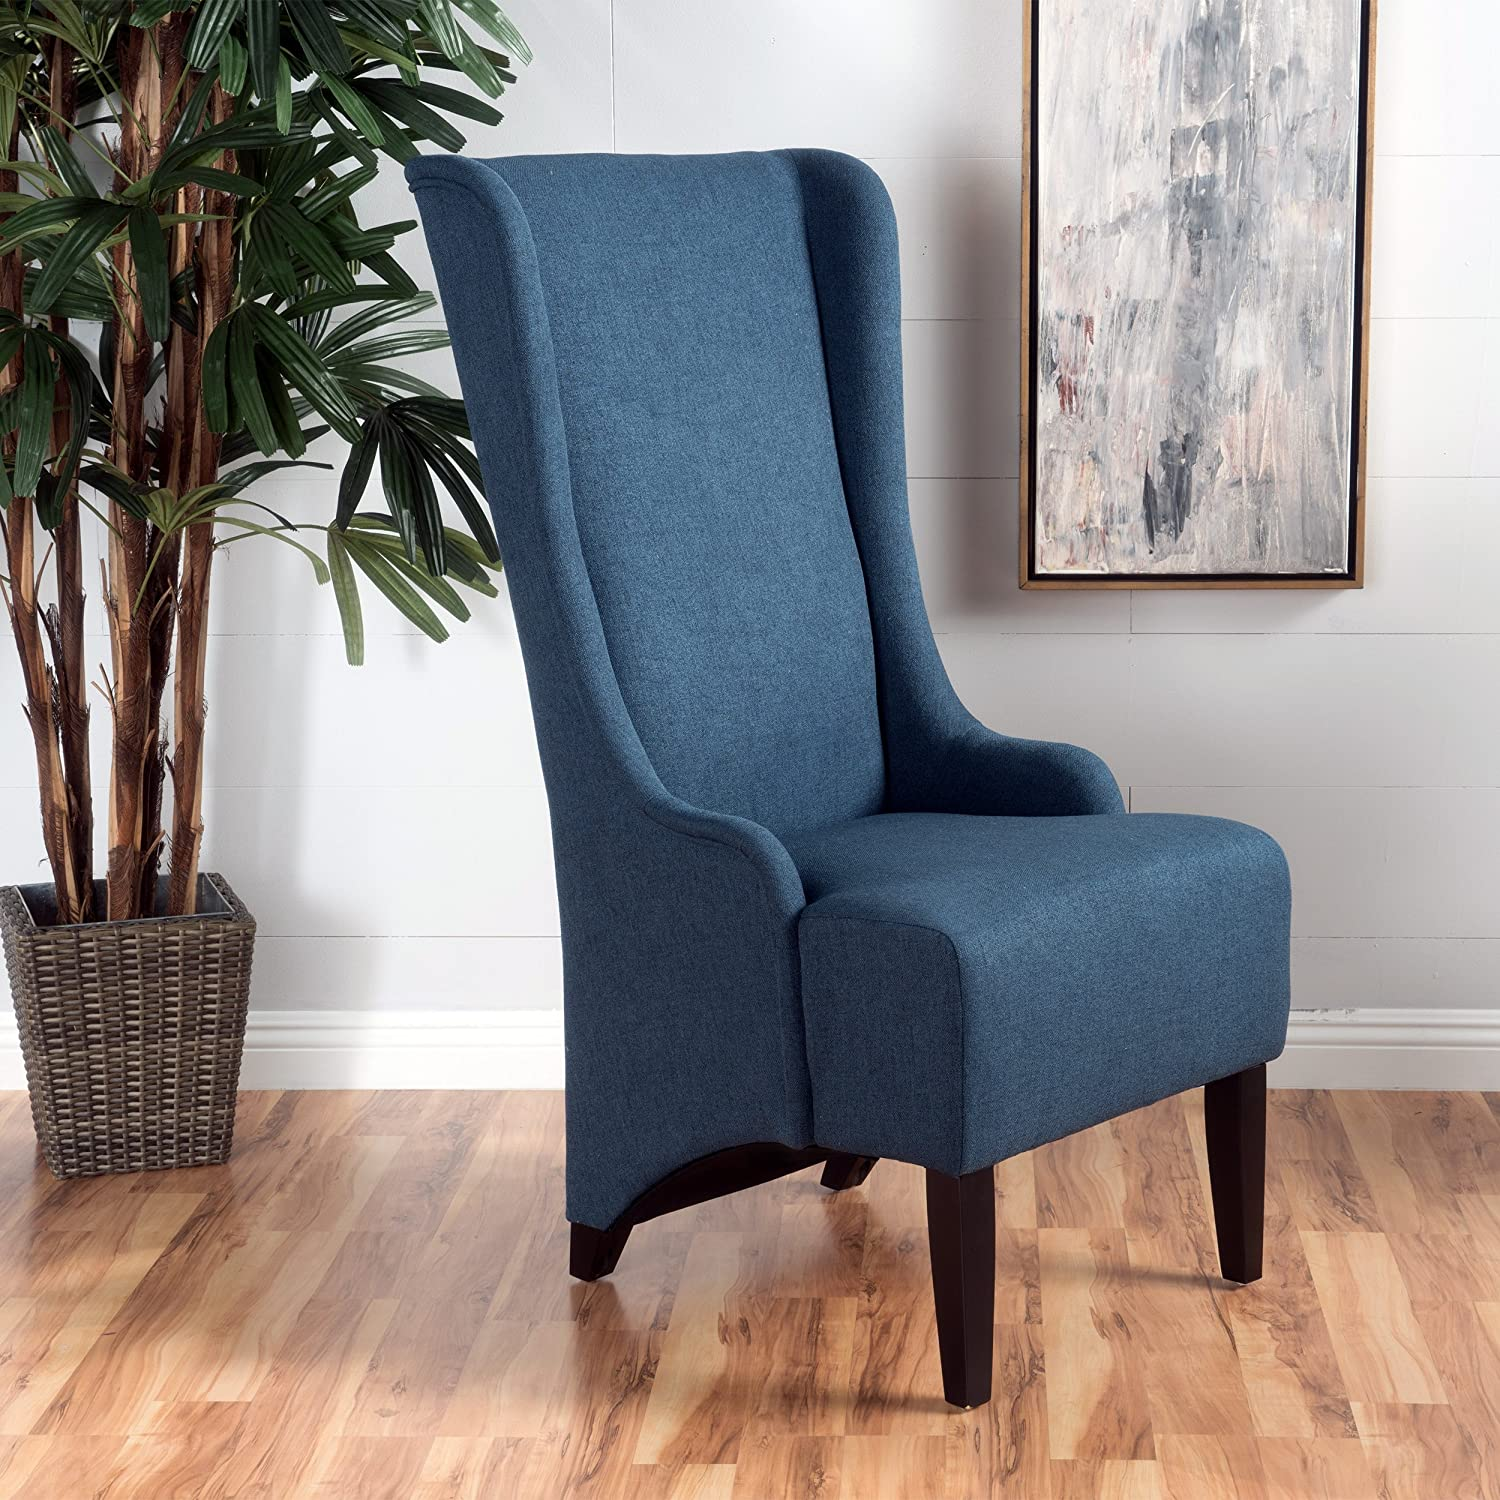 Christopher Knight Home Callie Fabric Dining Chair, Dark Blue